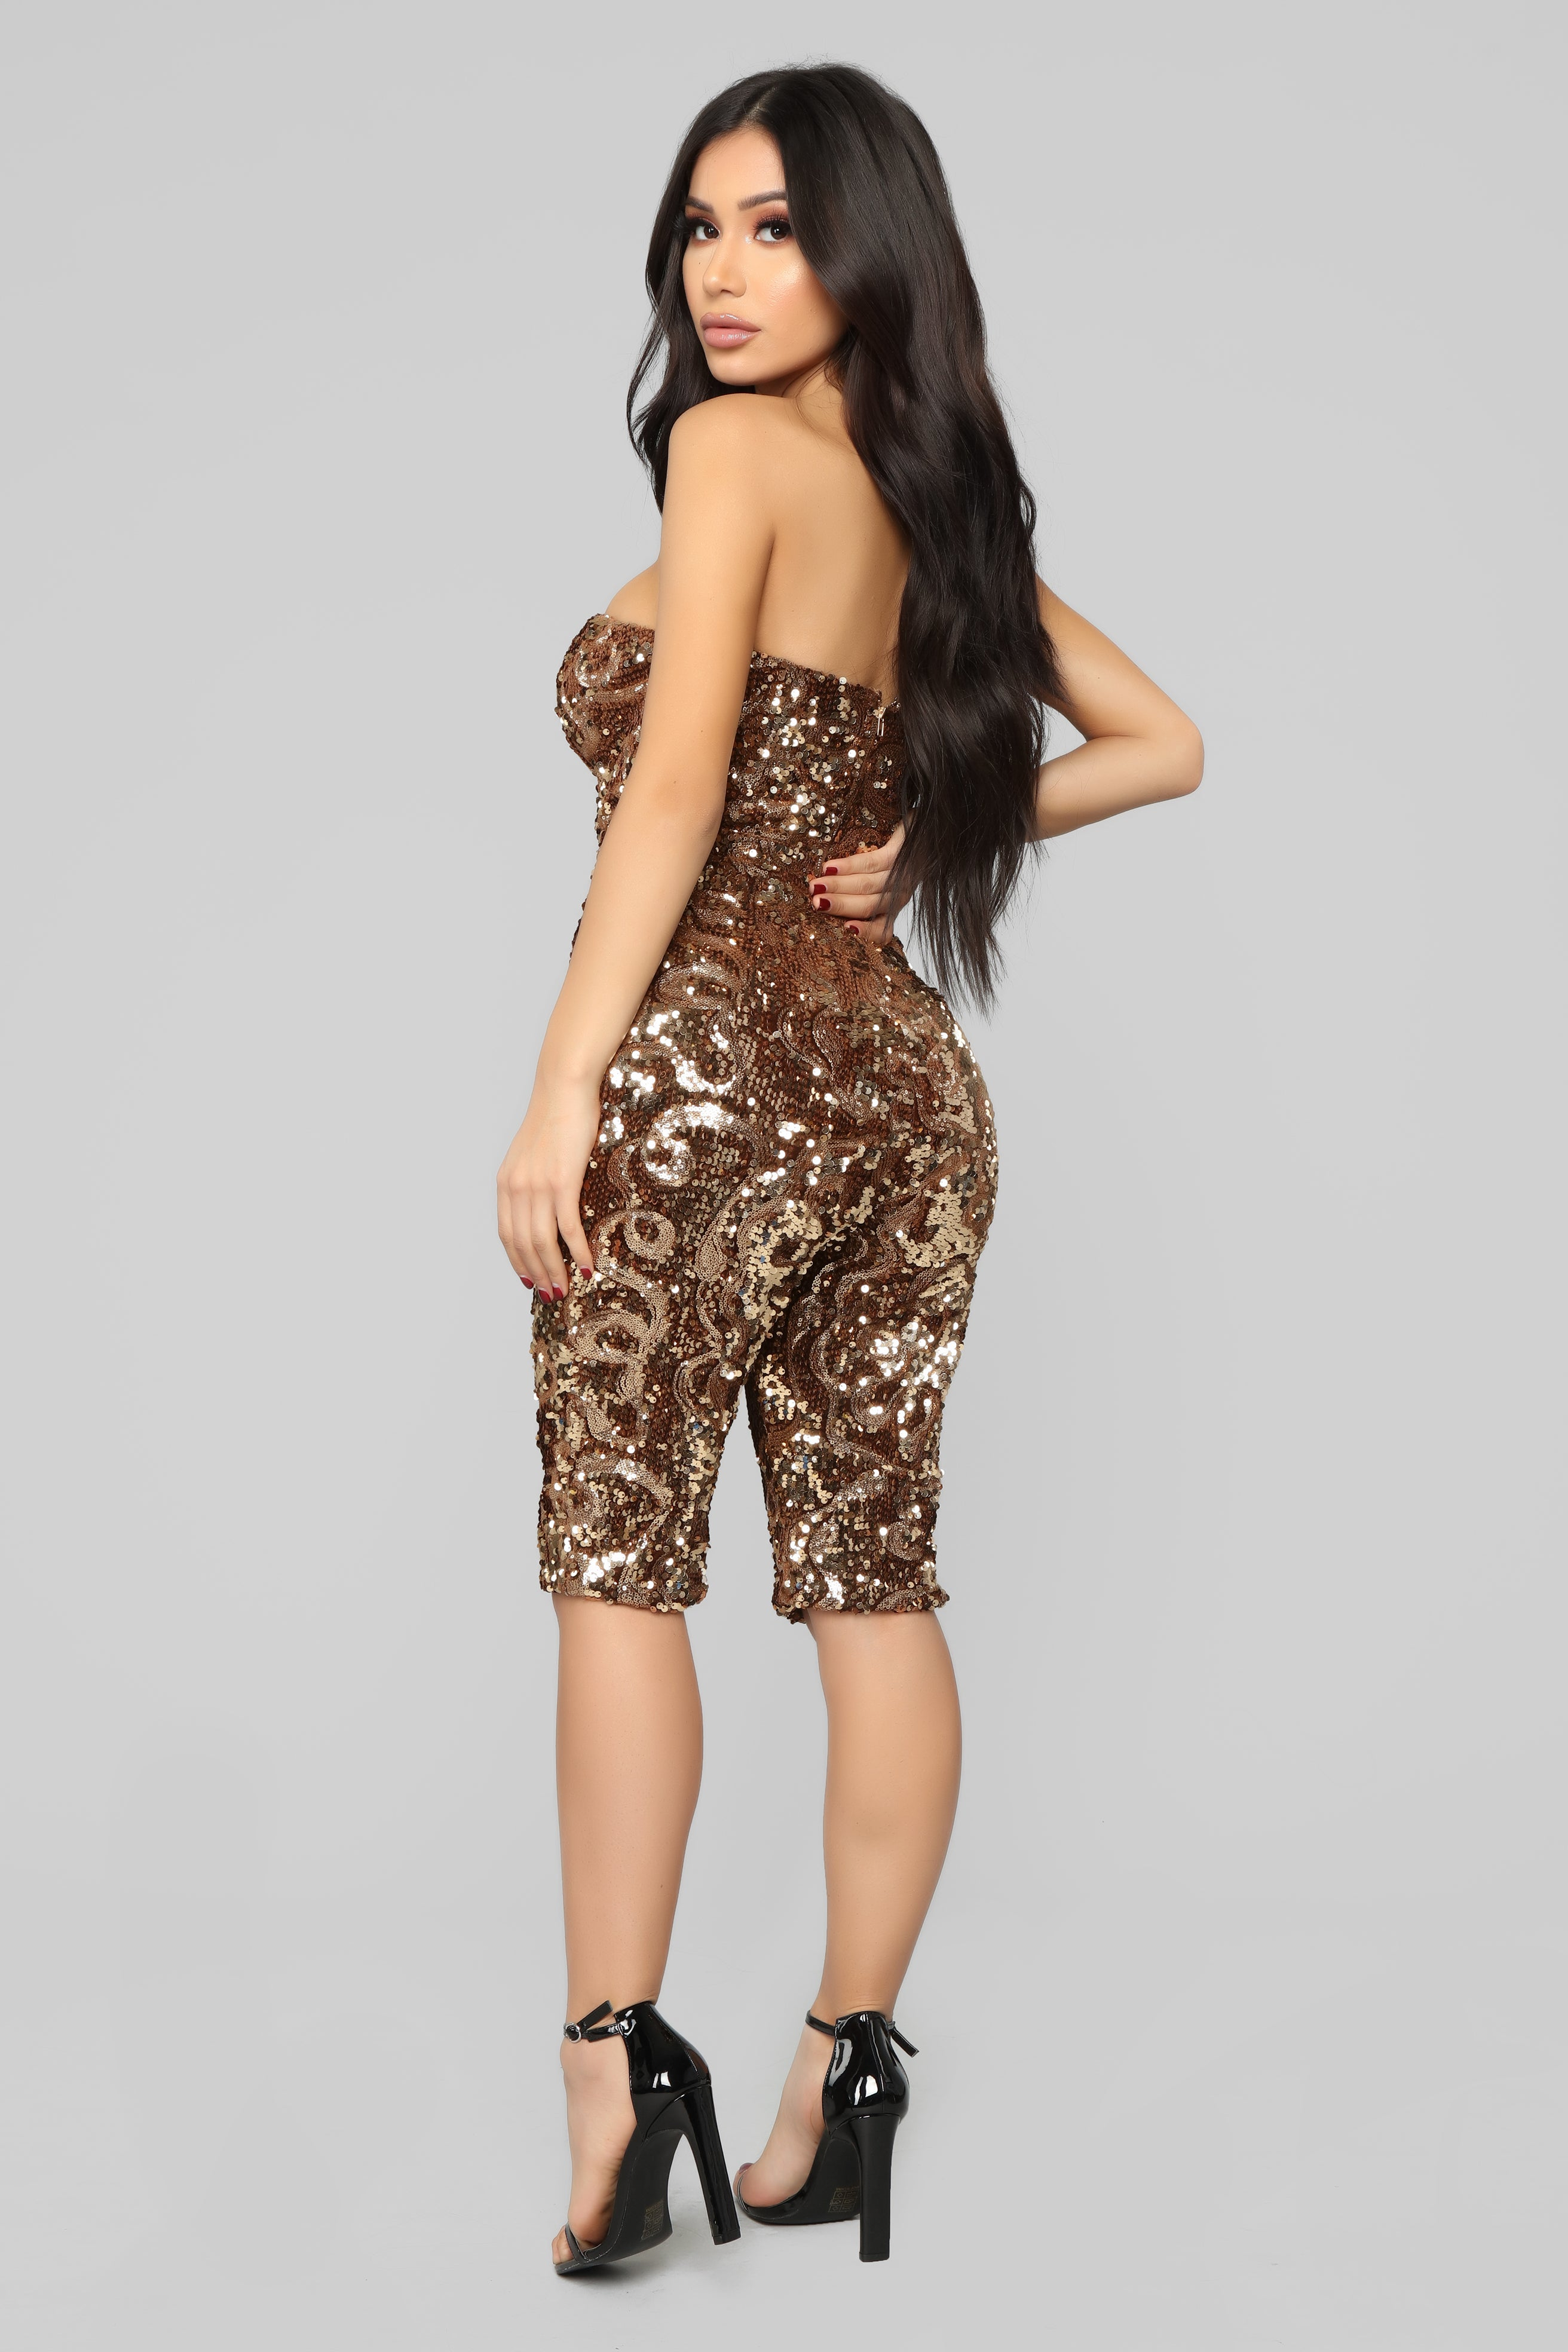 69abfb2b0665 Party Bash Sequin Romper - Gold